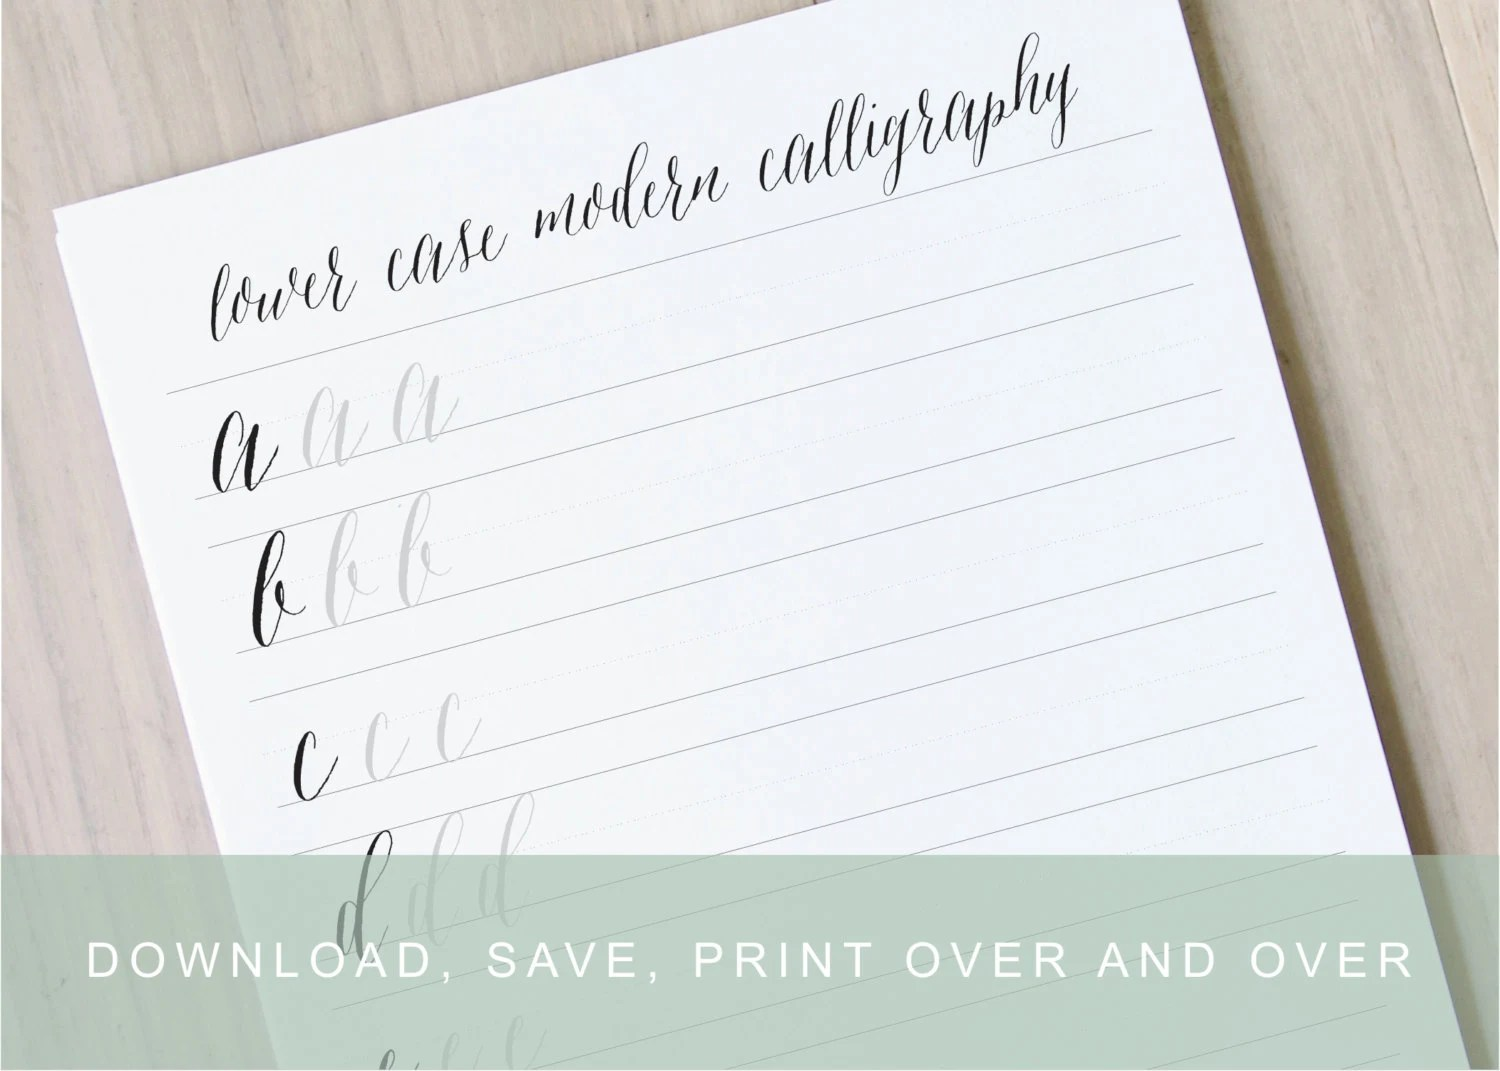 Lower Case Modern Calligraphy Worksheet Learn Calligraphy Printable Practice Sheet Pointed Pen